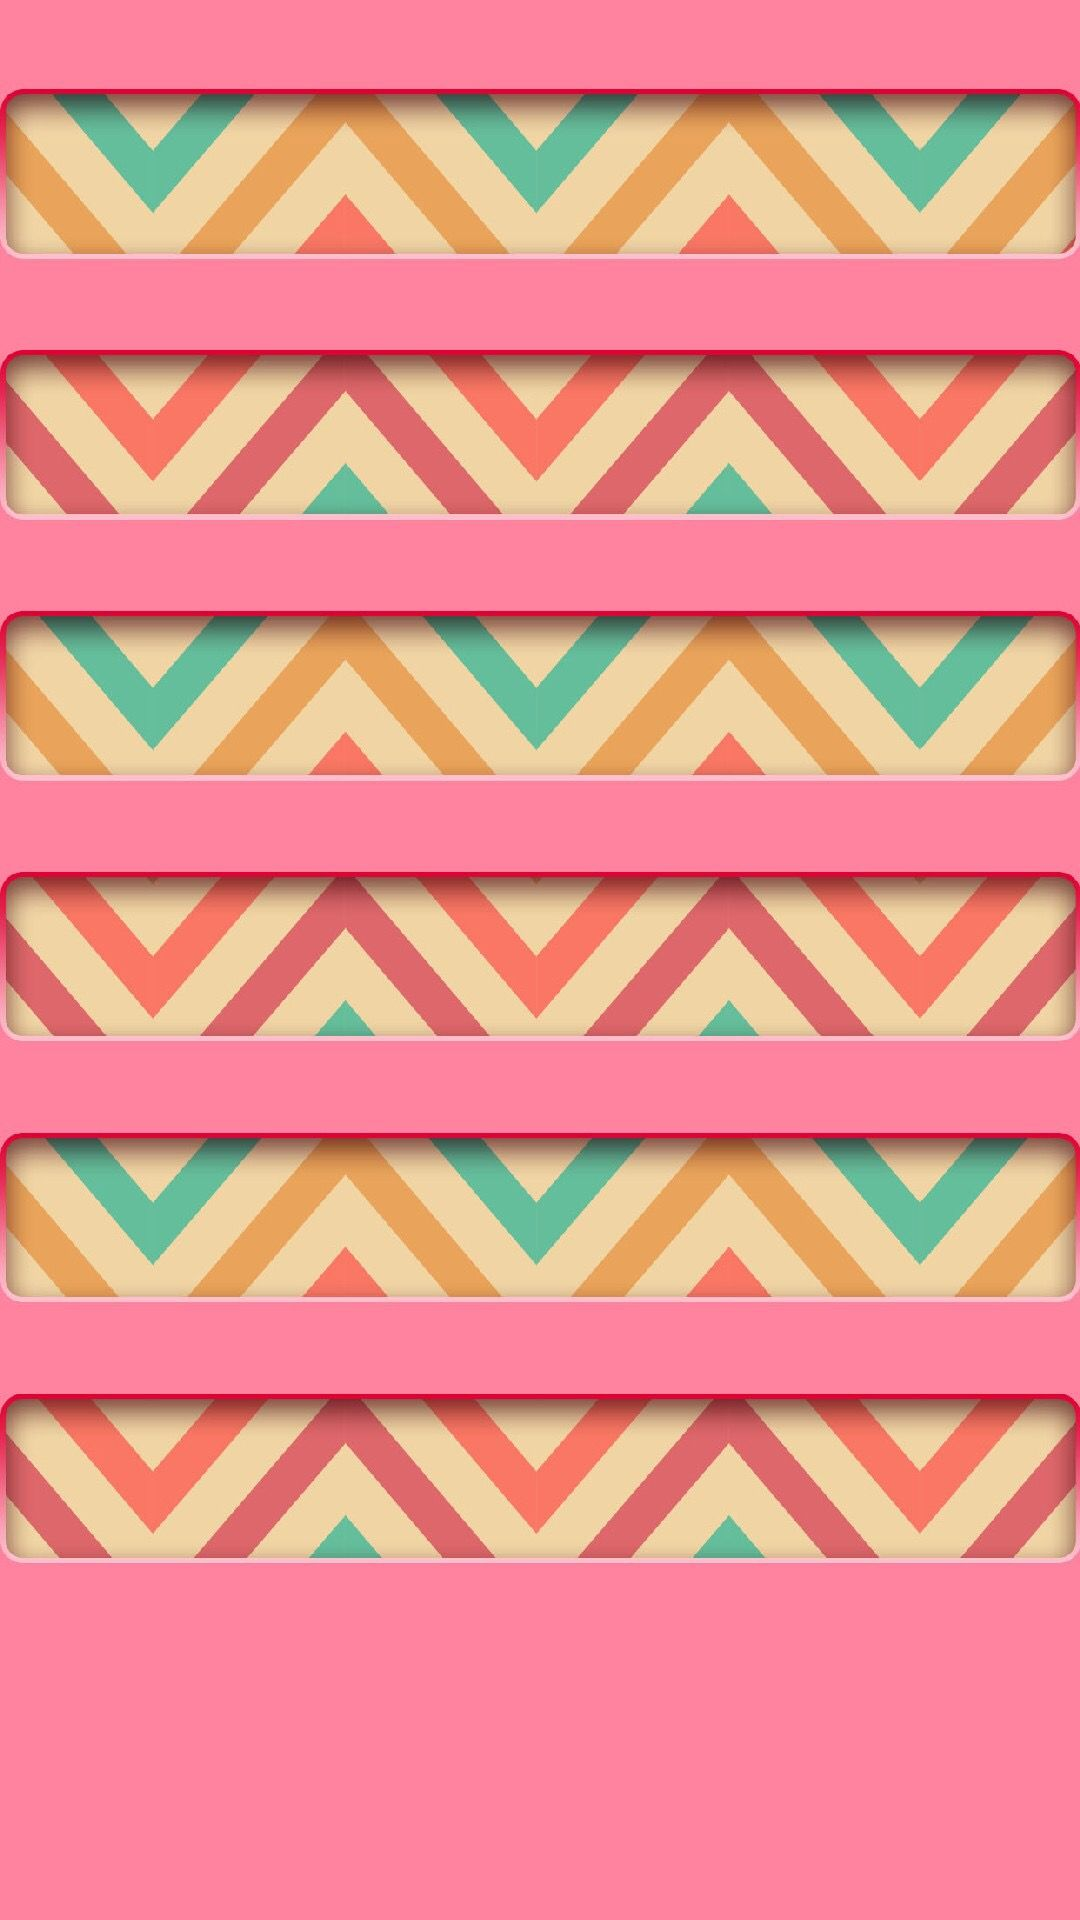 TAP AND GET THE FREE APP! Shelves Colorful Zigzag Stripes